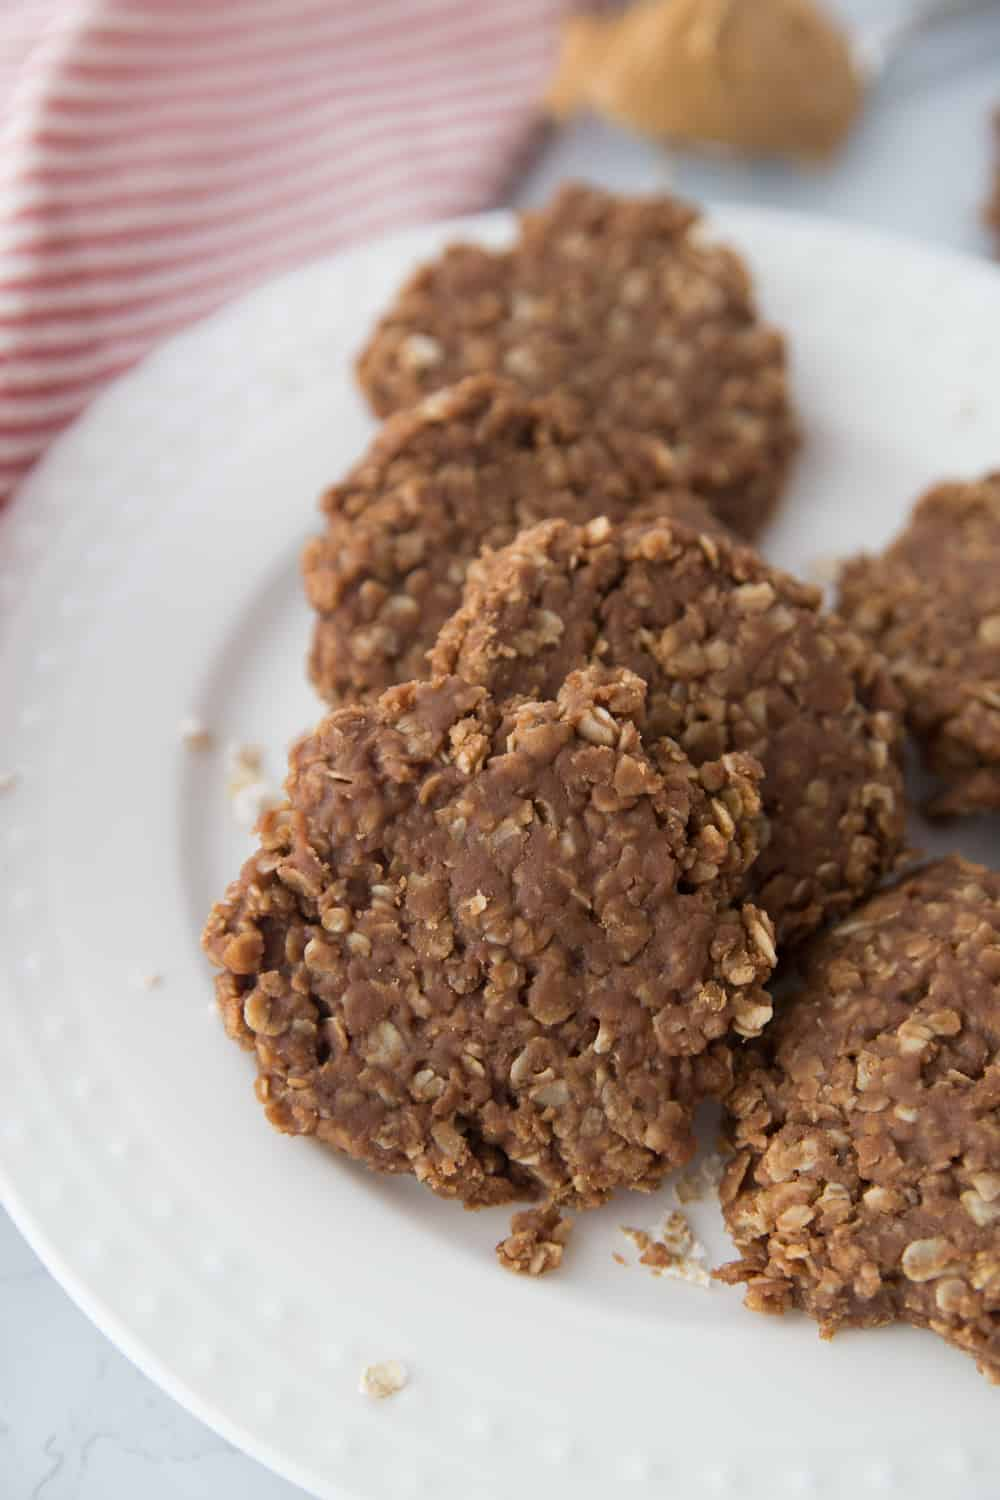 No bake cookies on a plate.